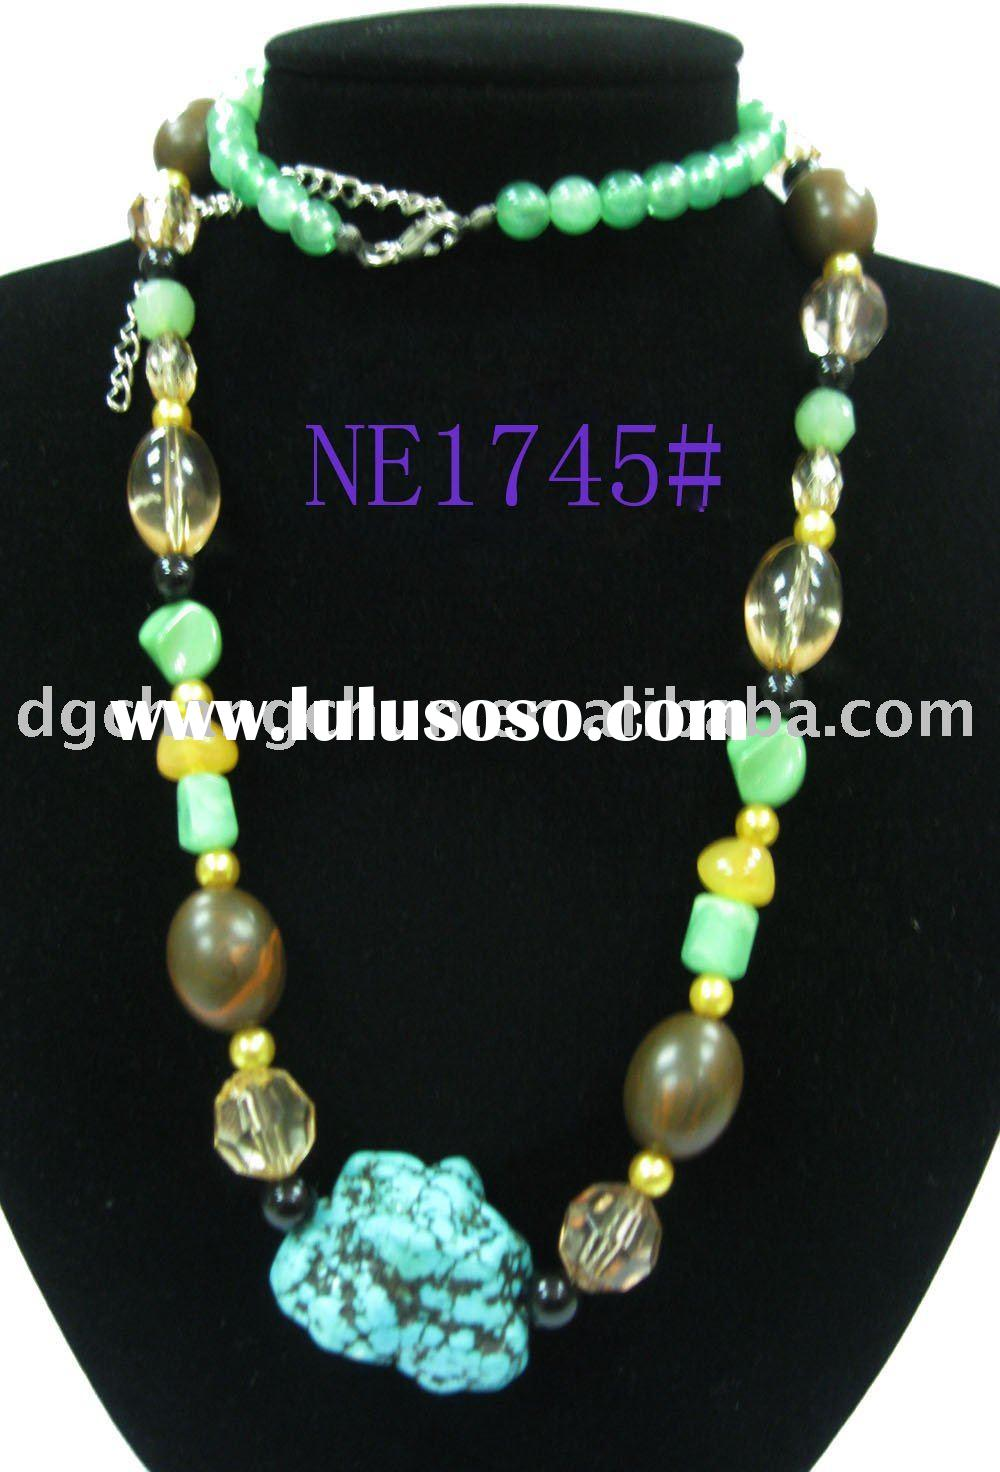 2010 fashion Vintage turquoise beads necklace jewelry